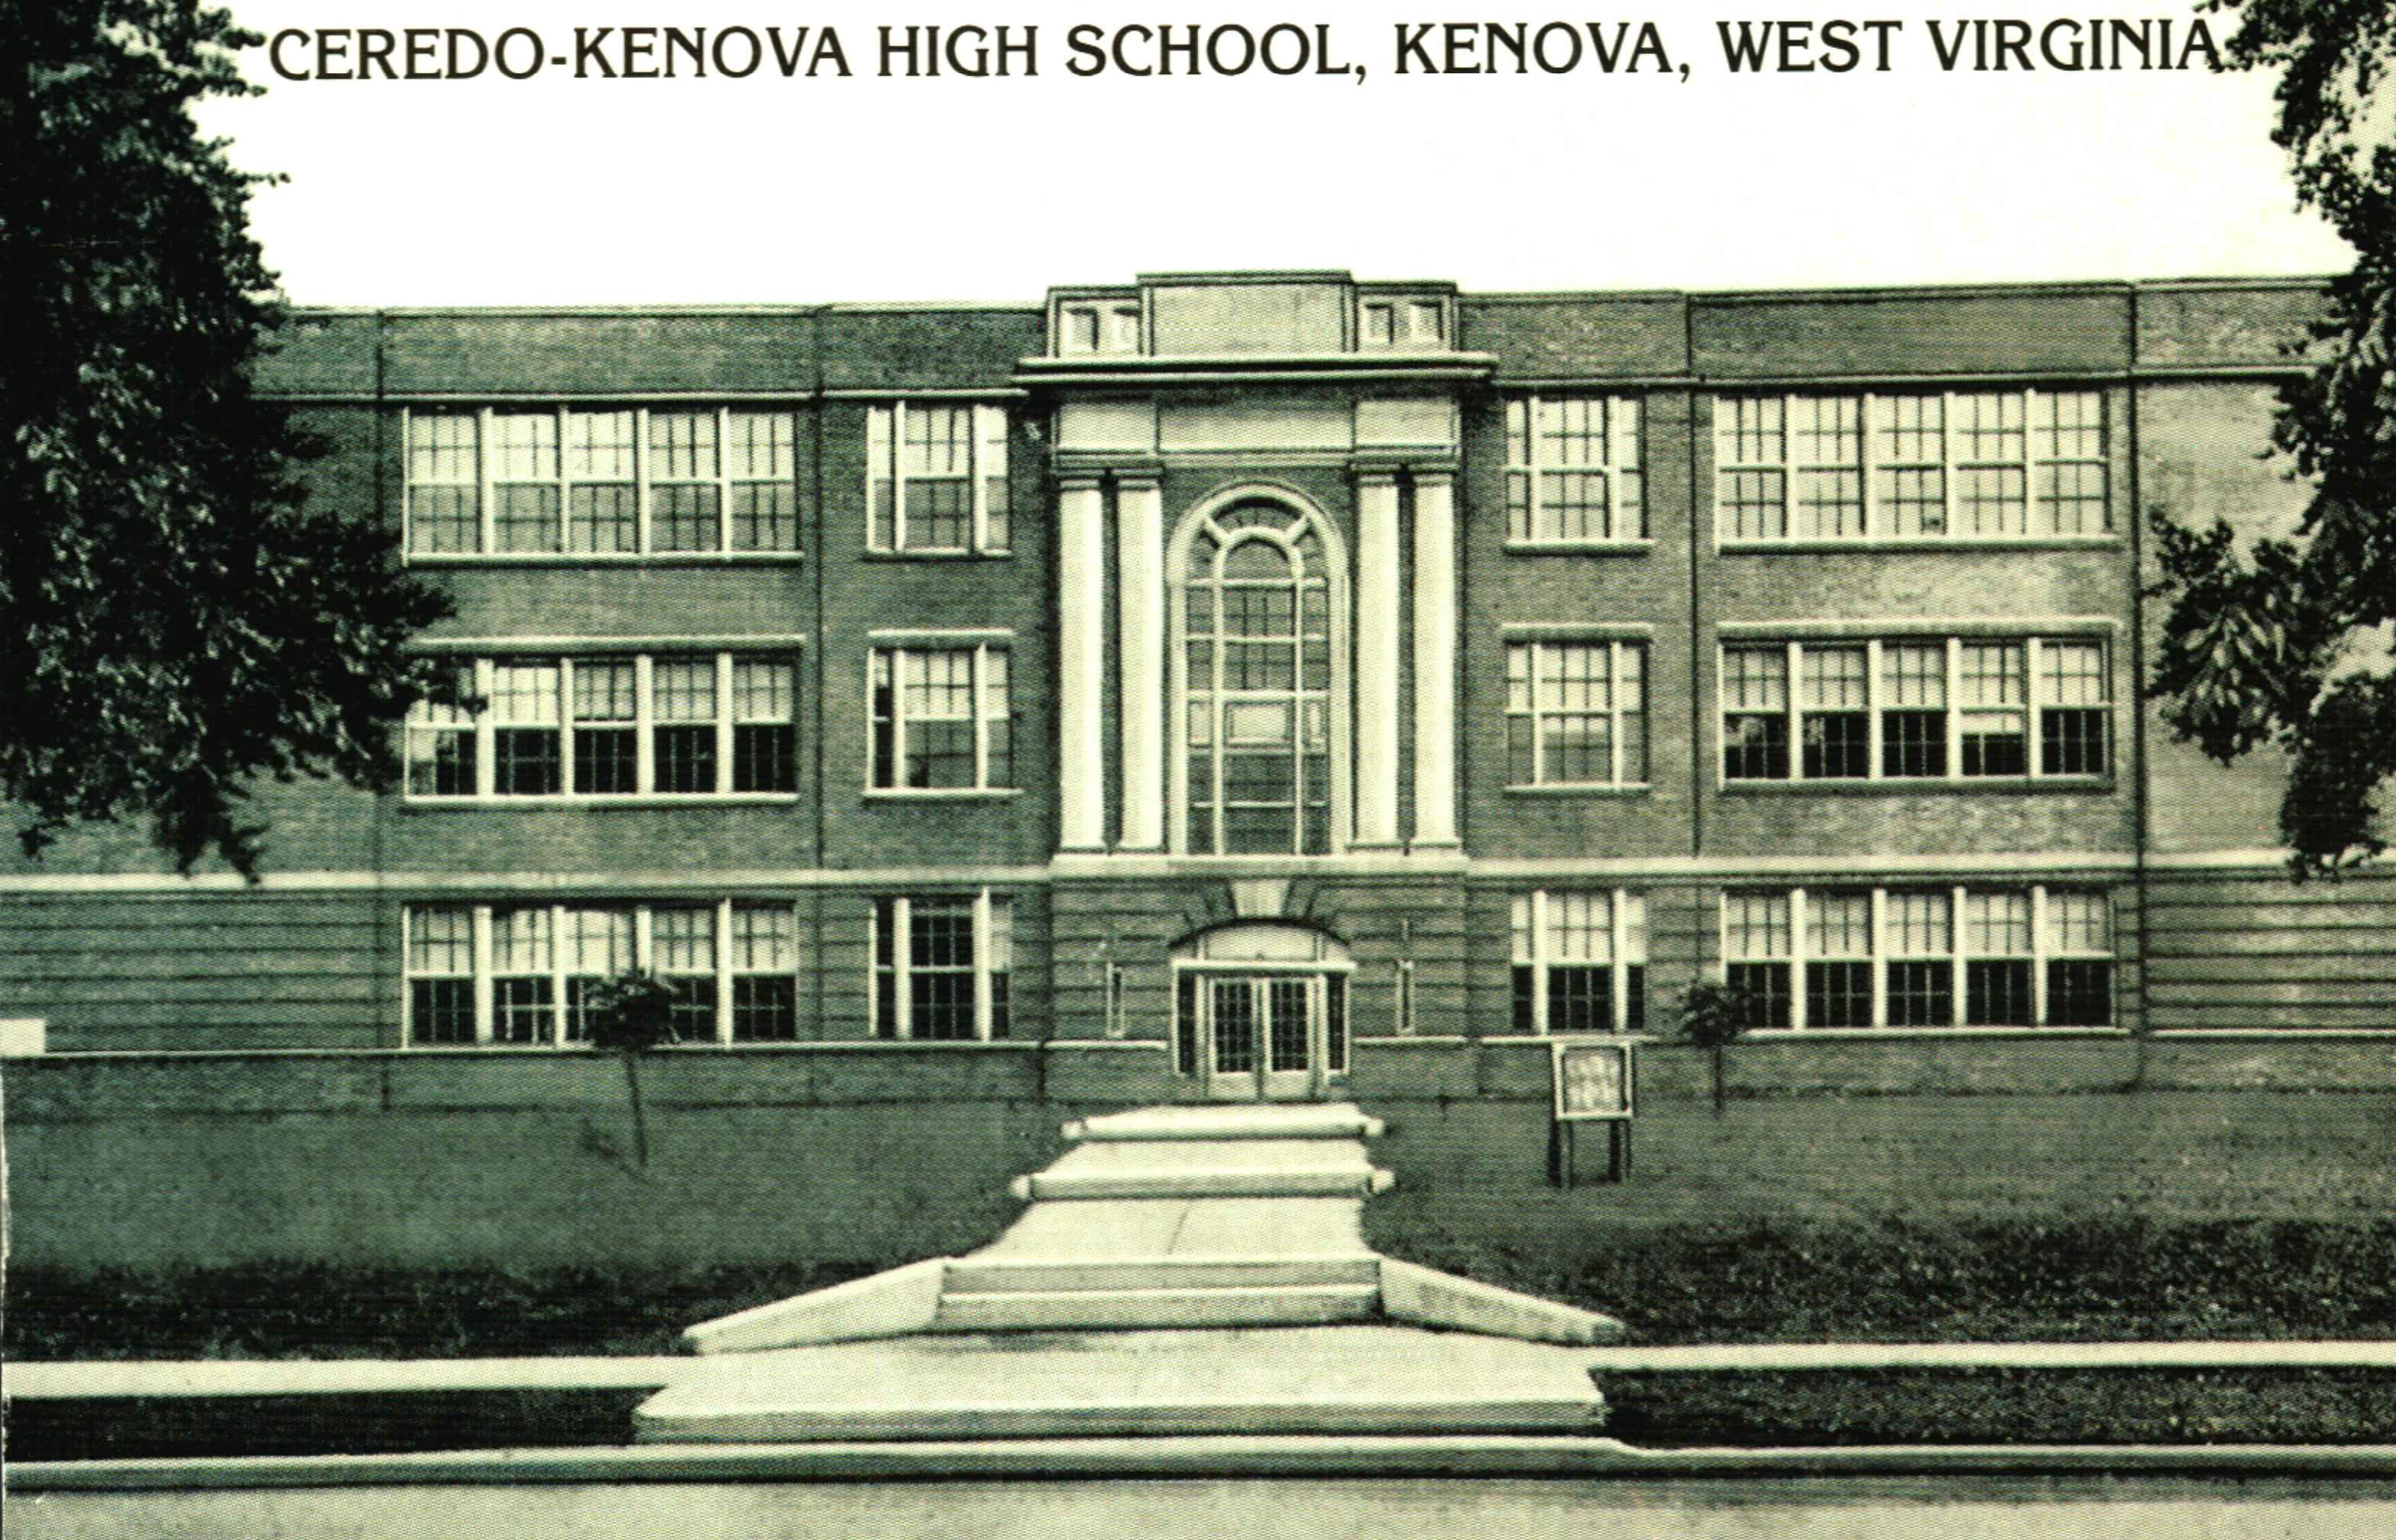 The communities of Ceredo and Kenova were symbolically united in 1923 with the opening of Ceredo-Kenova High School, which brought together students from both towns. The school closed in 1998. Image courtesy of the Ceredo Historical Society Museum.